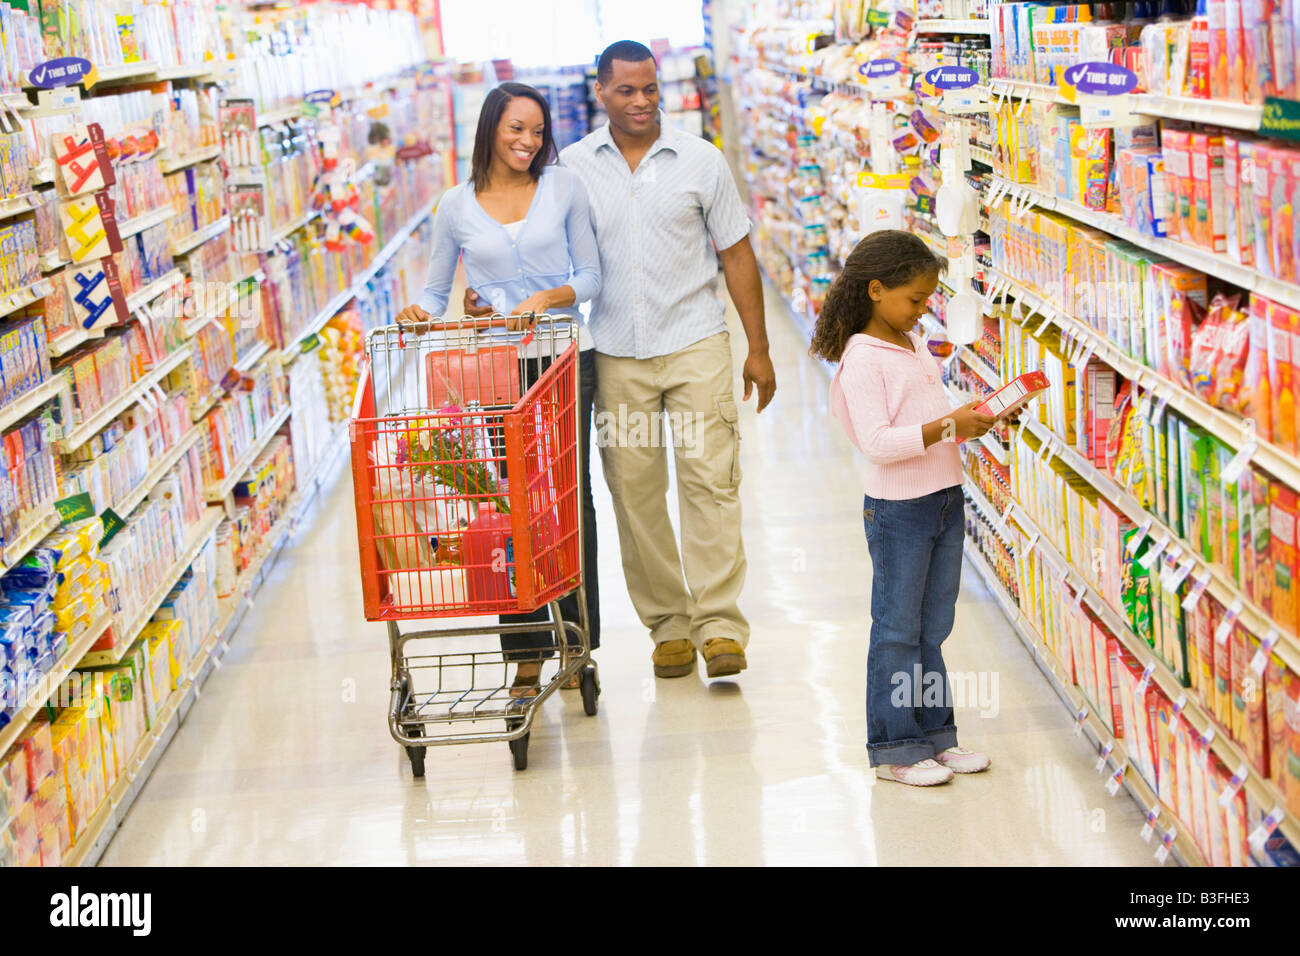 Mother and father with young daughter shopping at a grocery store. - Stock Image